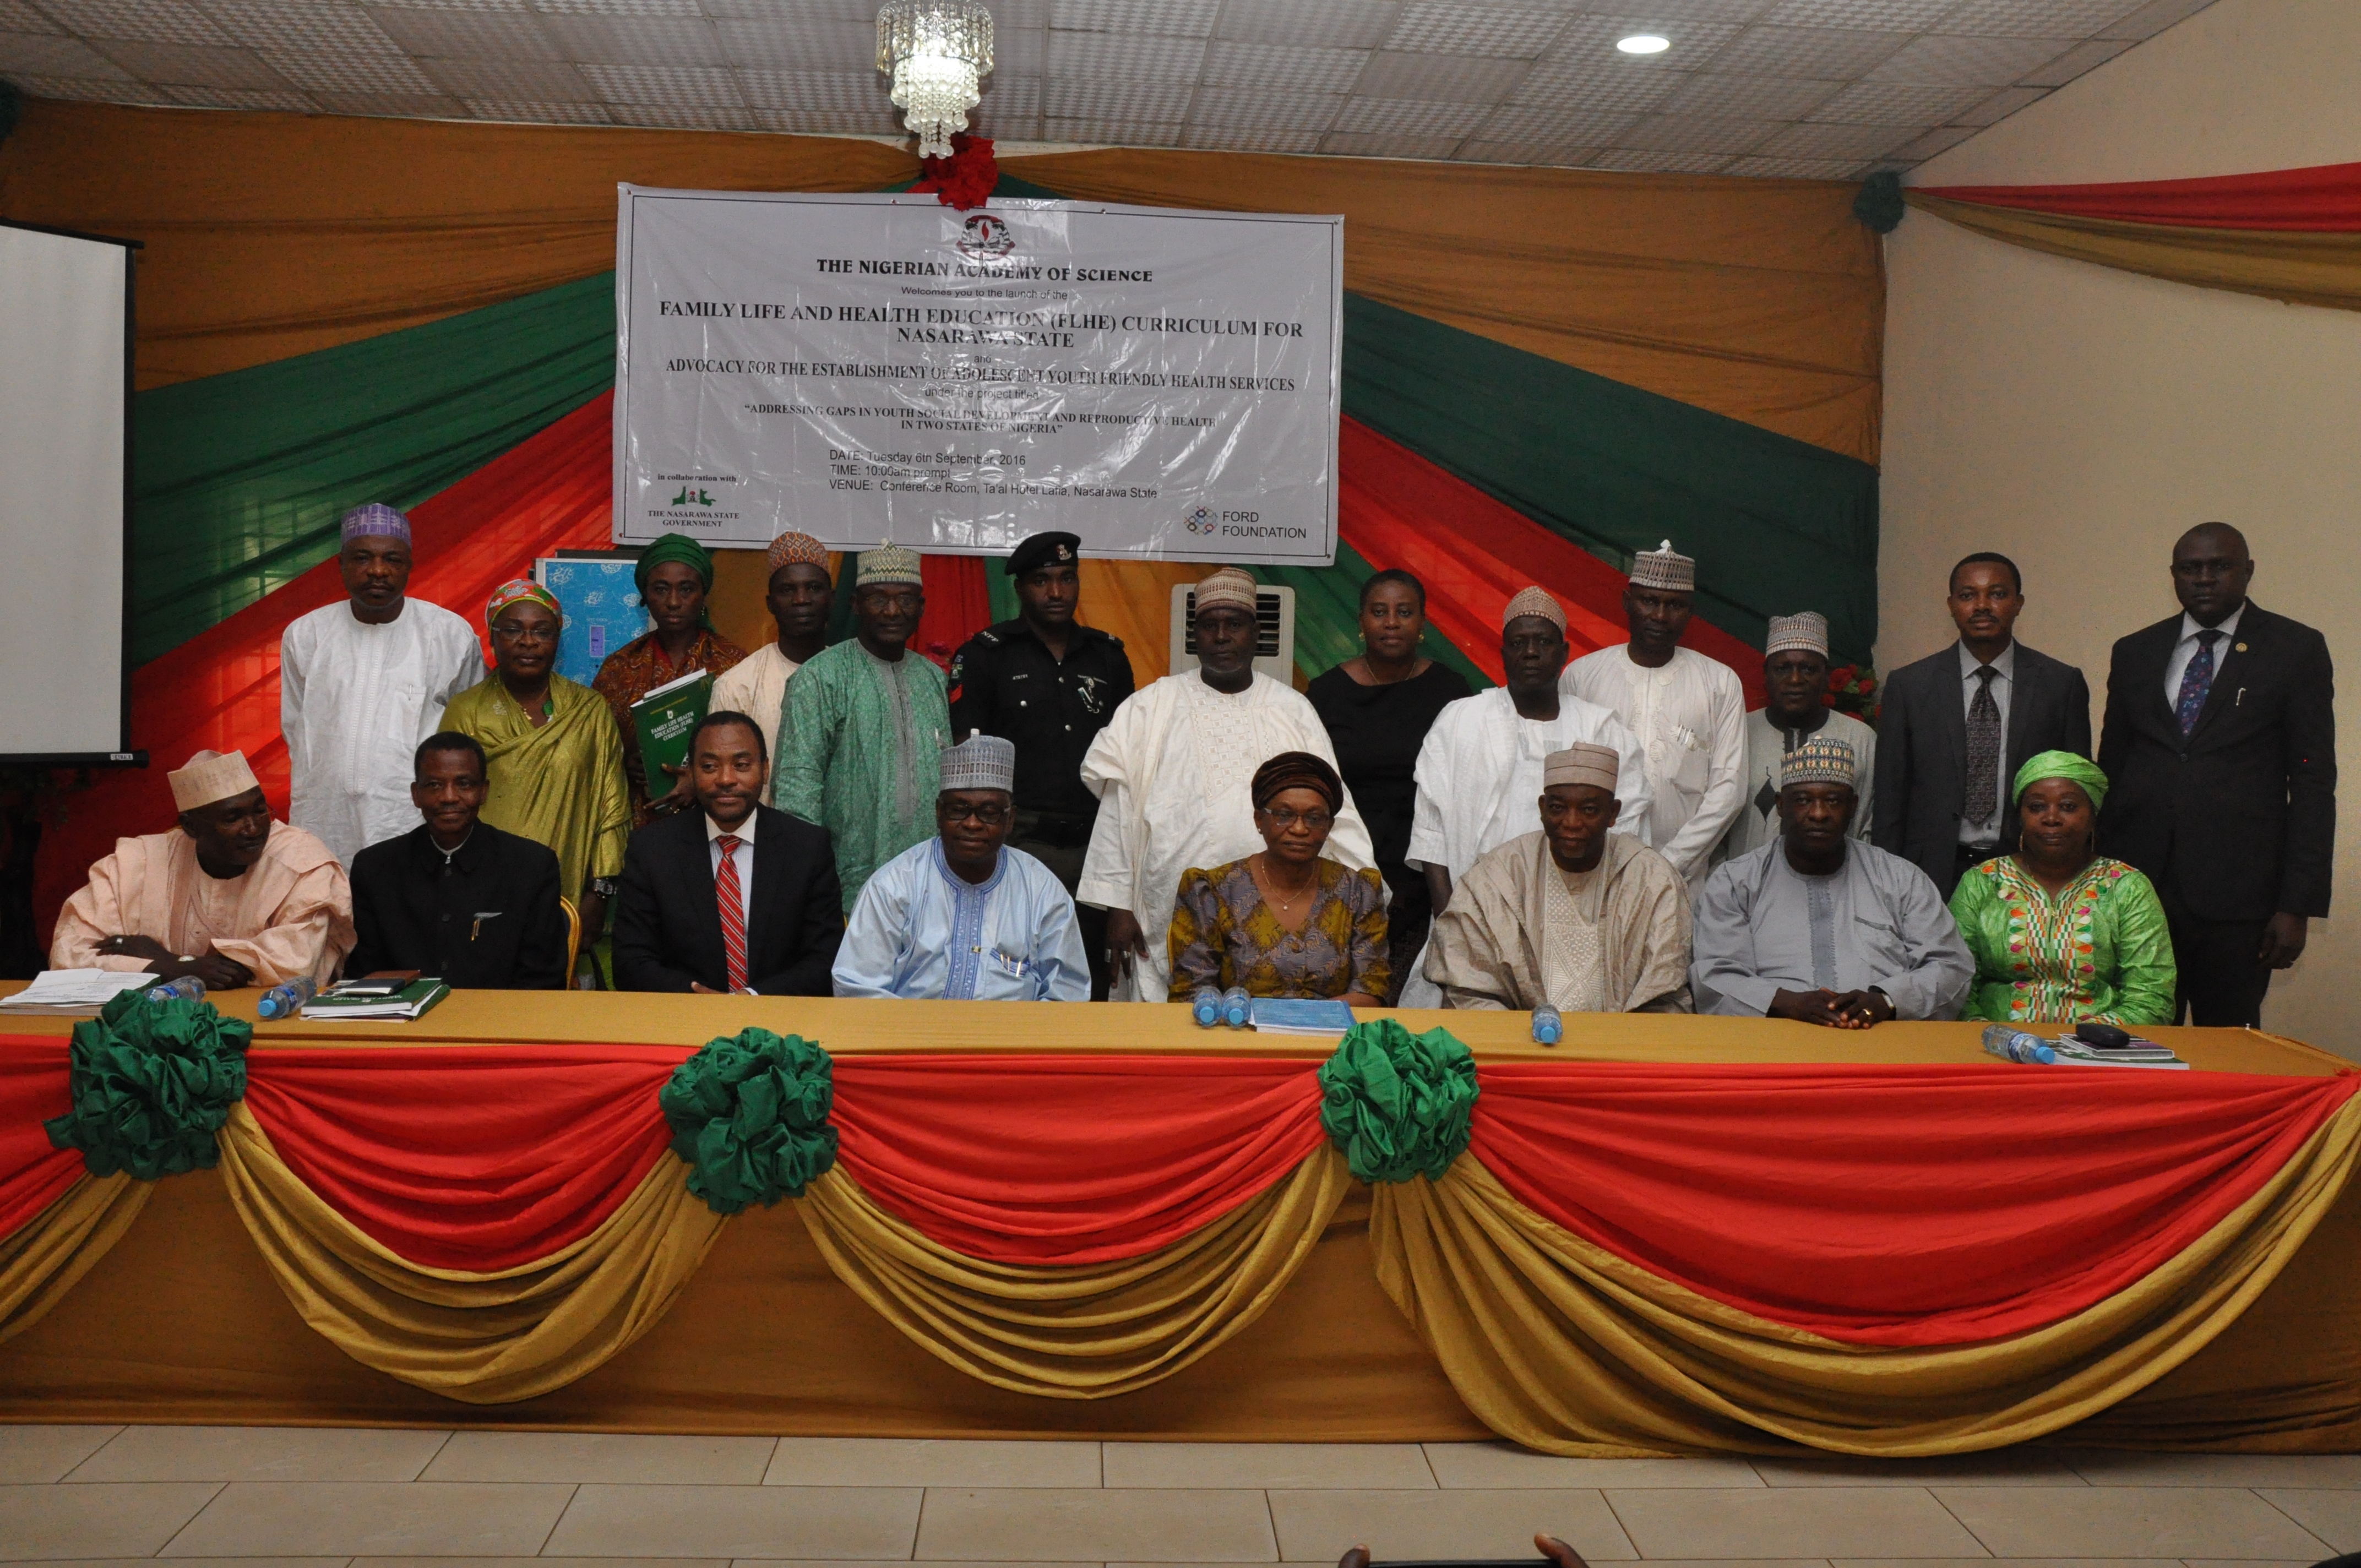 NAS team at FLHE launch in Nasarawa | The Nigerian Academy of Science